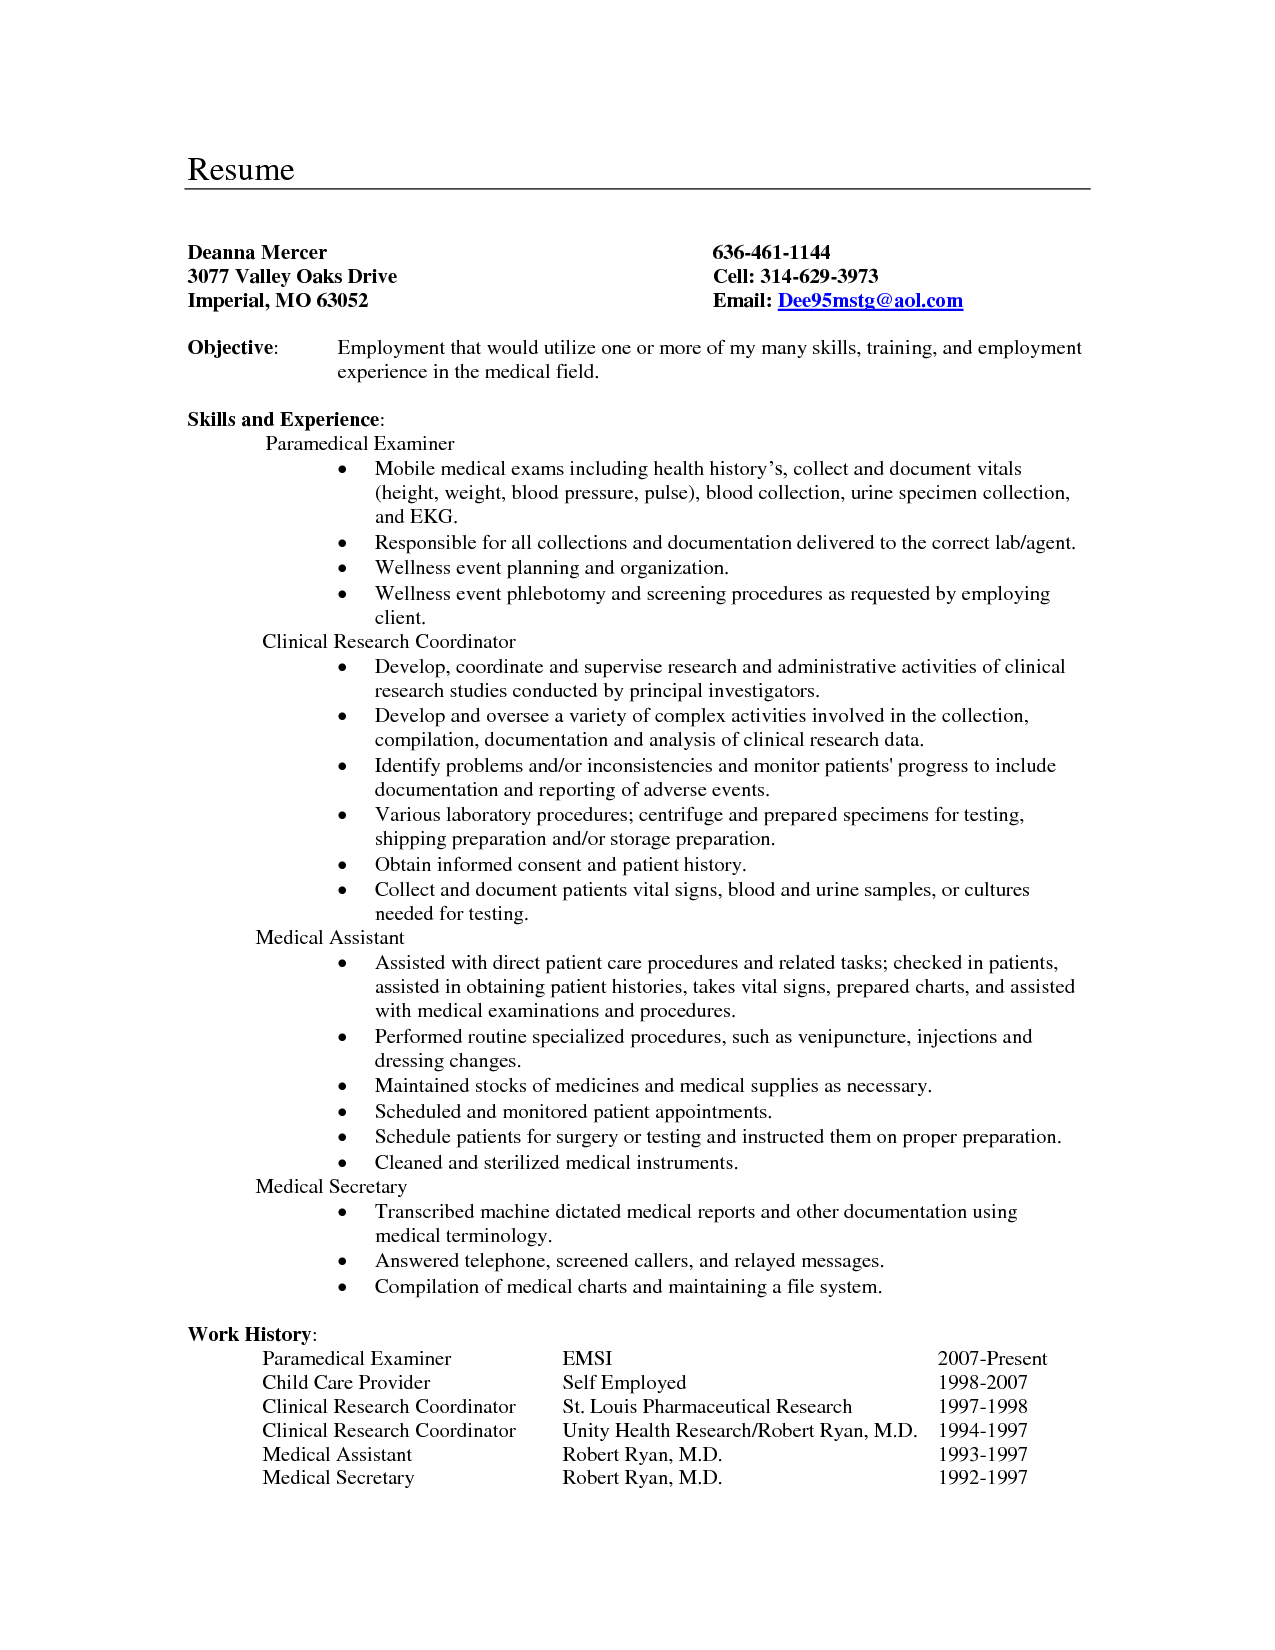 Administrative Assistant Resume Example Medical Secretary Resume Objective Examples  North Carolina